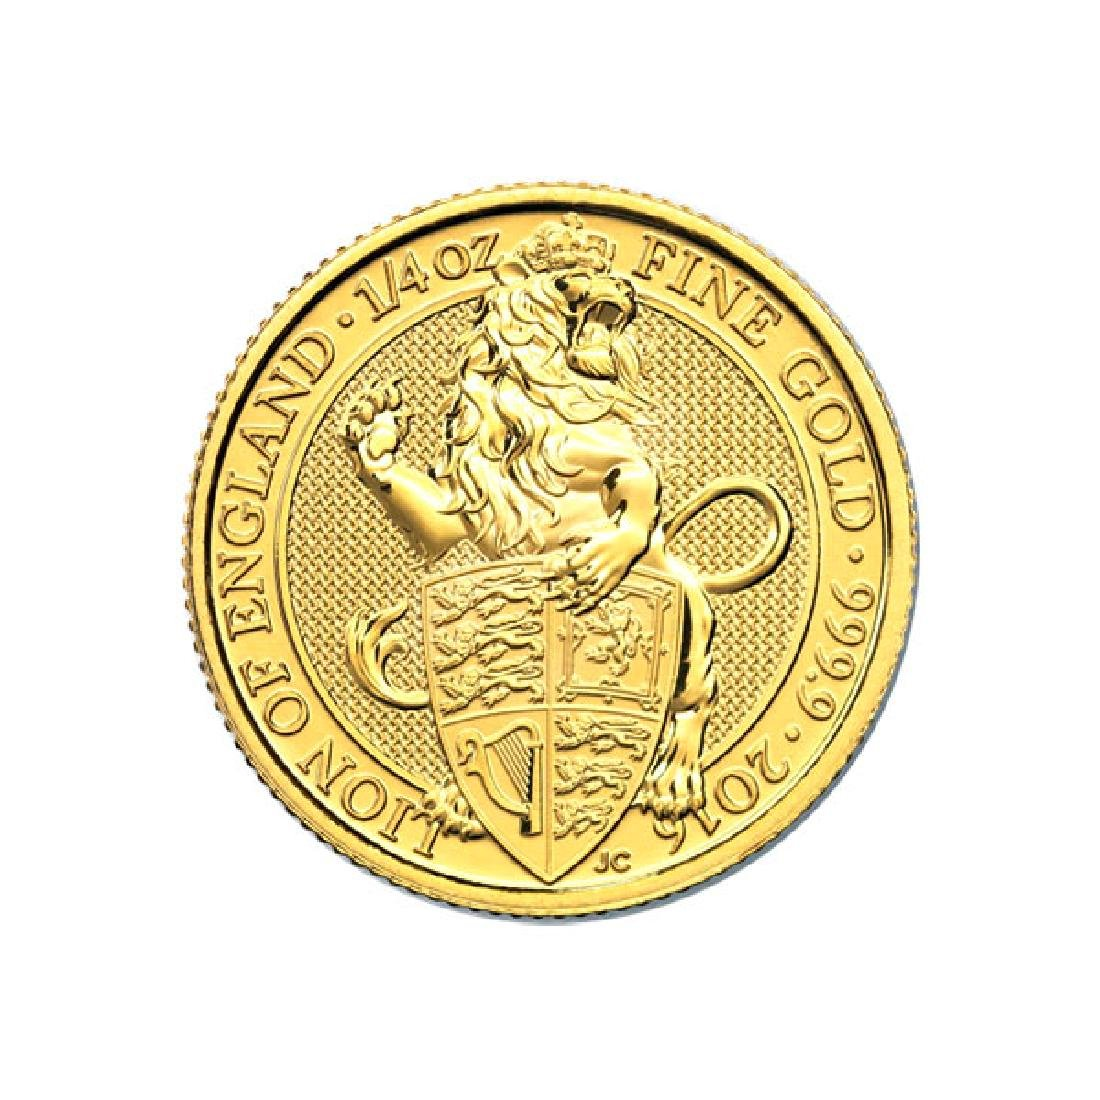 The Queens Beasts 1/4 oz. Gold Bullion 2016 Lion